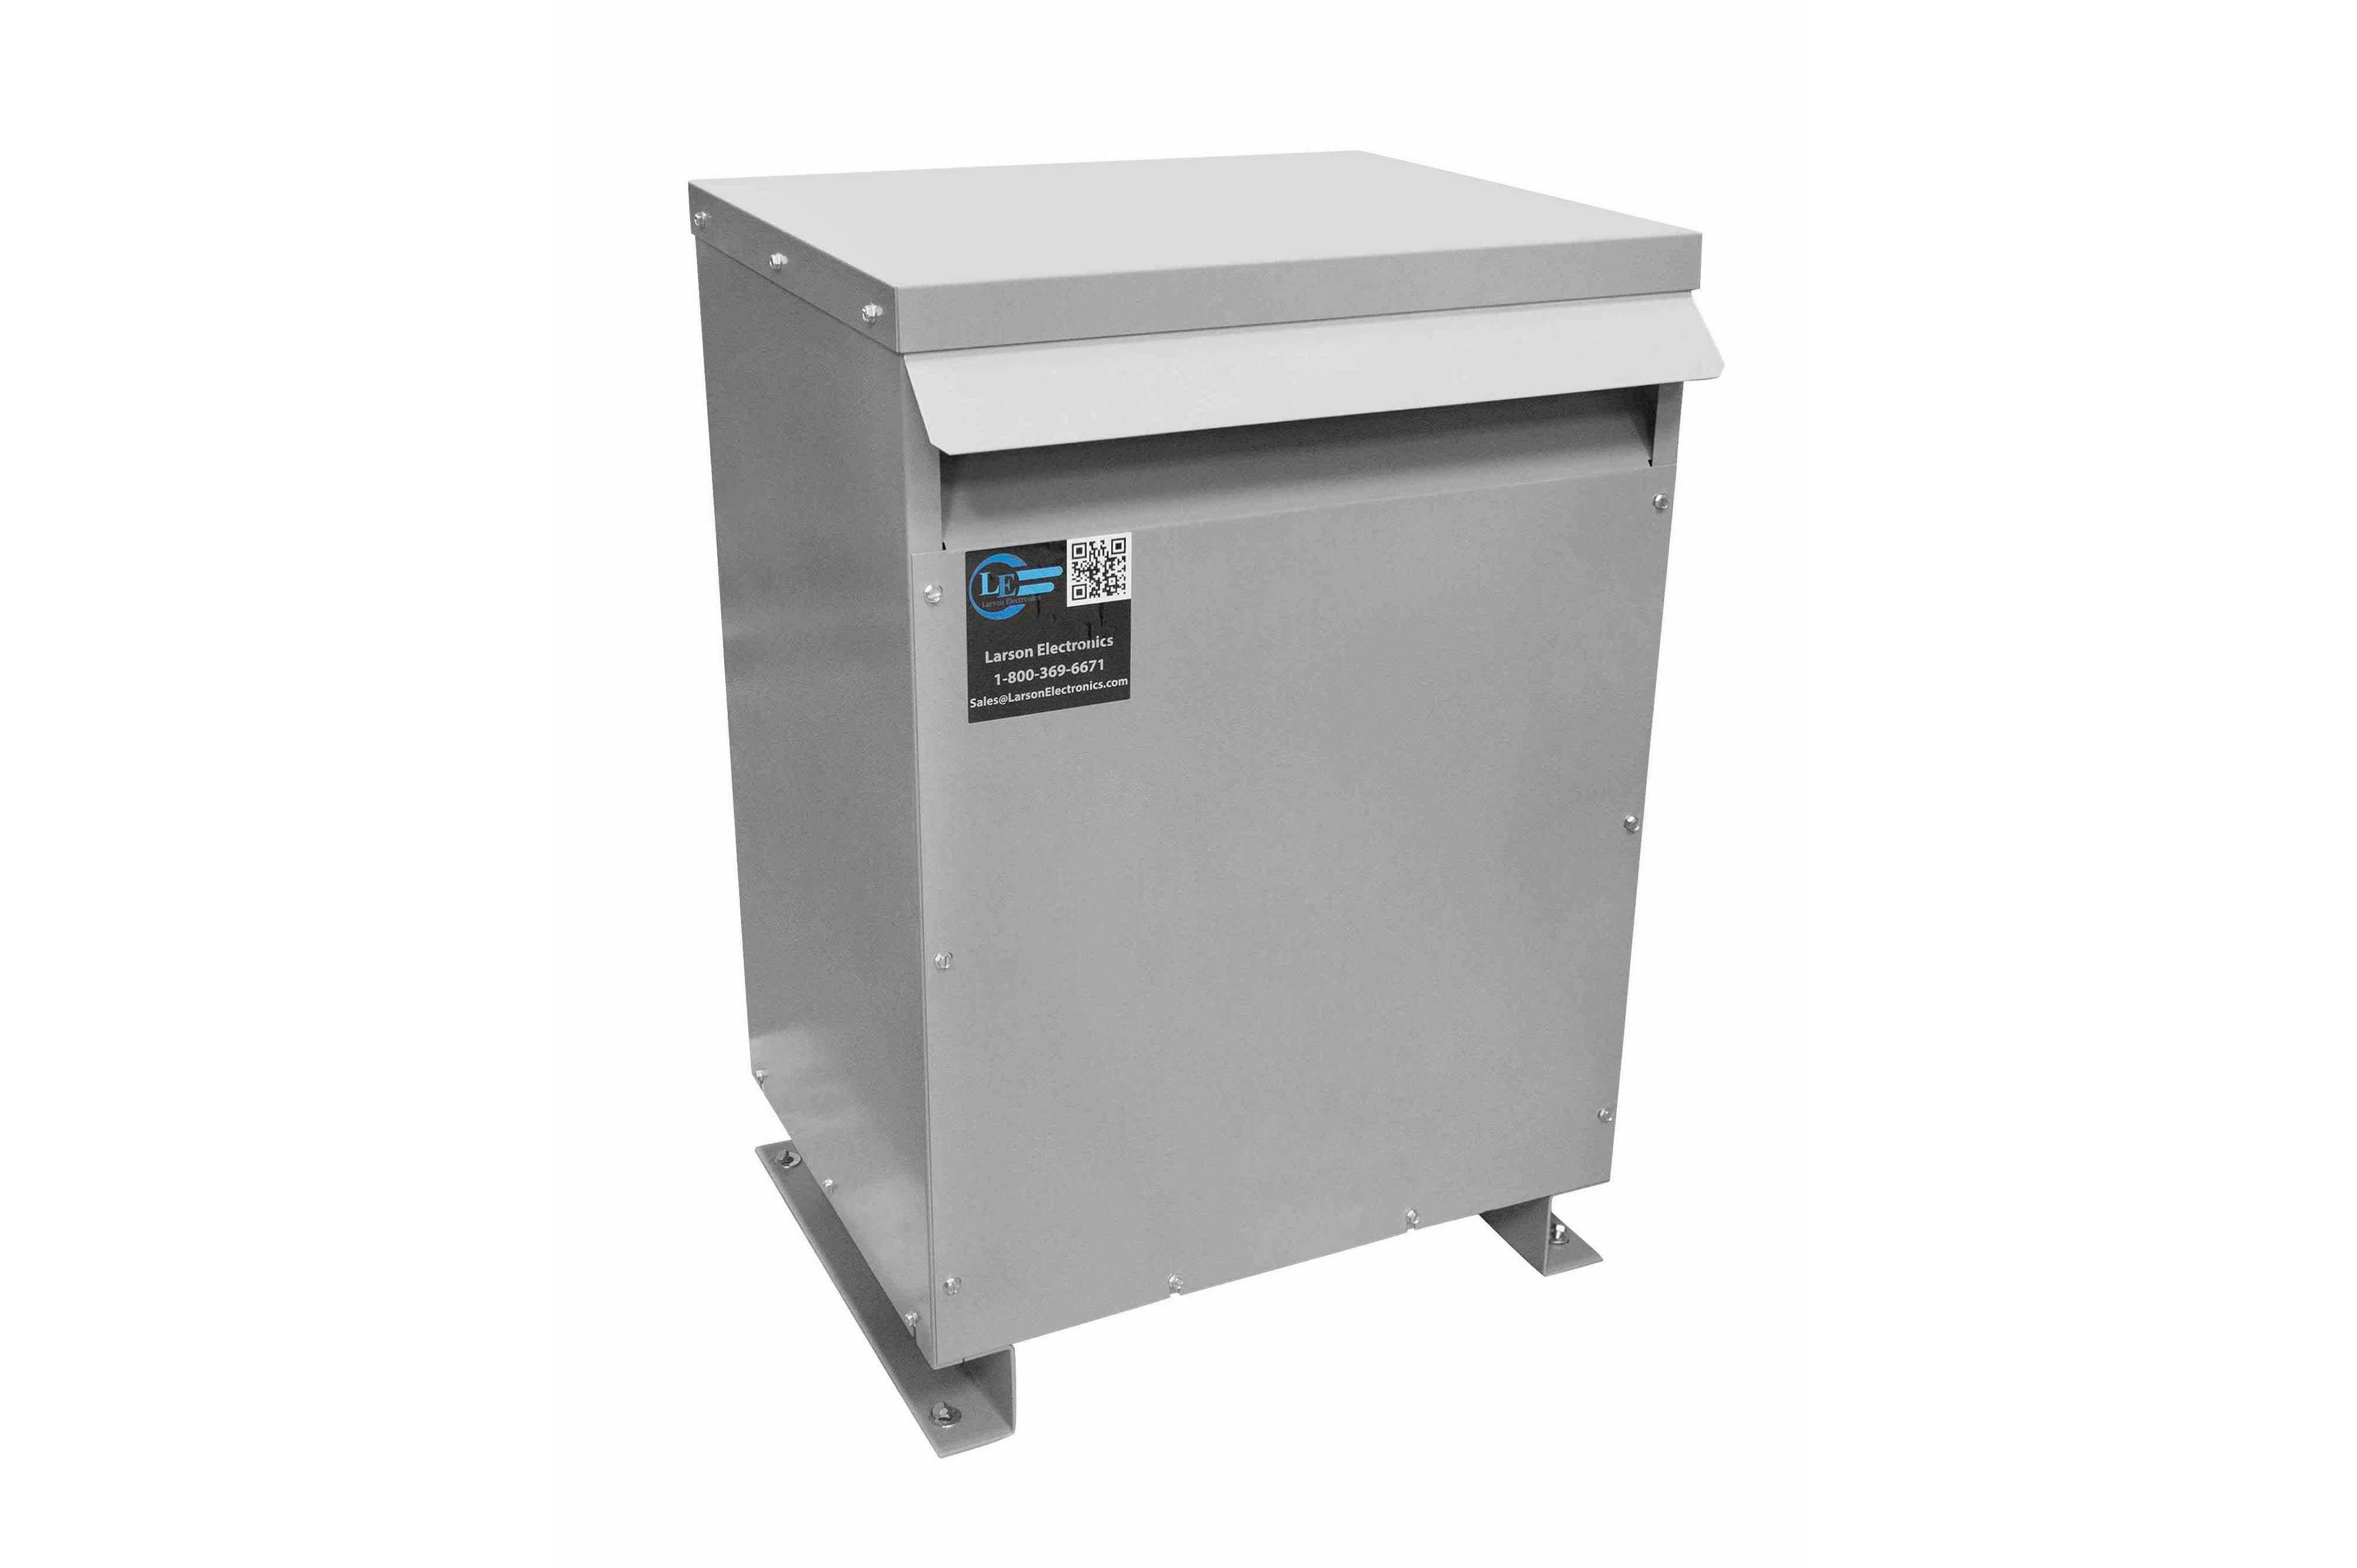 175 kVA 3PH Isolation Transformer, 600V Delta Primary, 208V Delta Secondary, N3R, Ventilated, 60 Hz